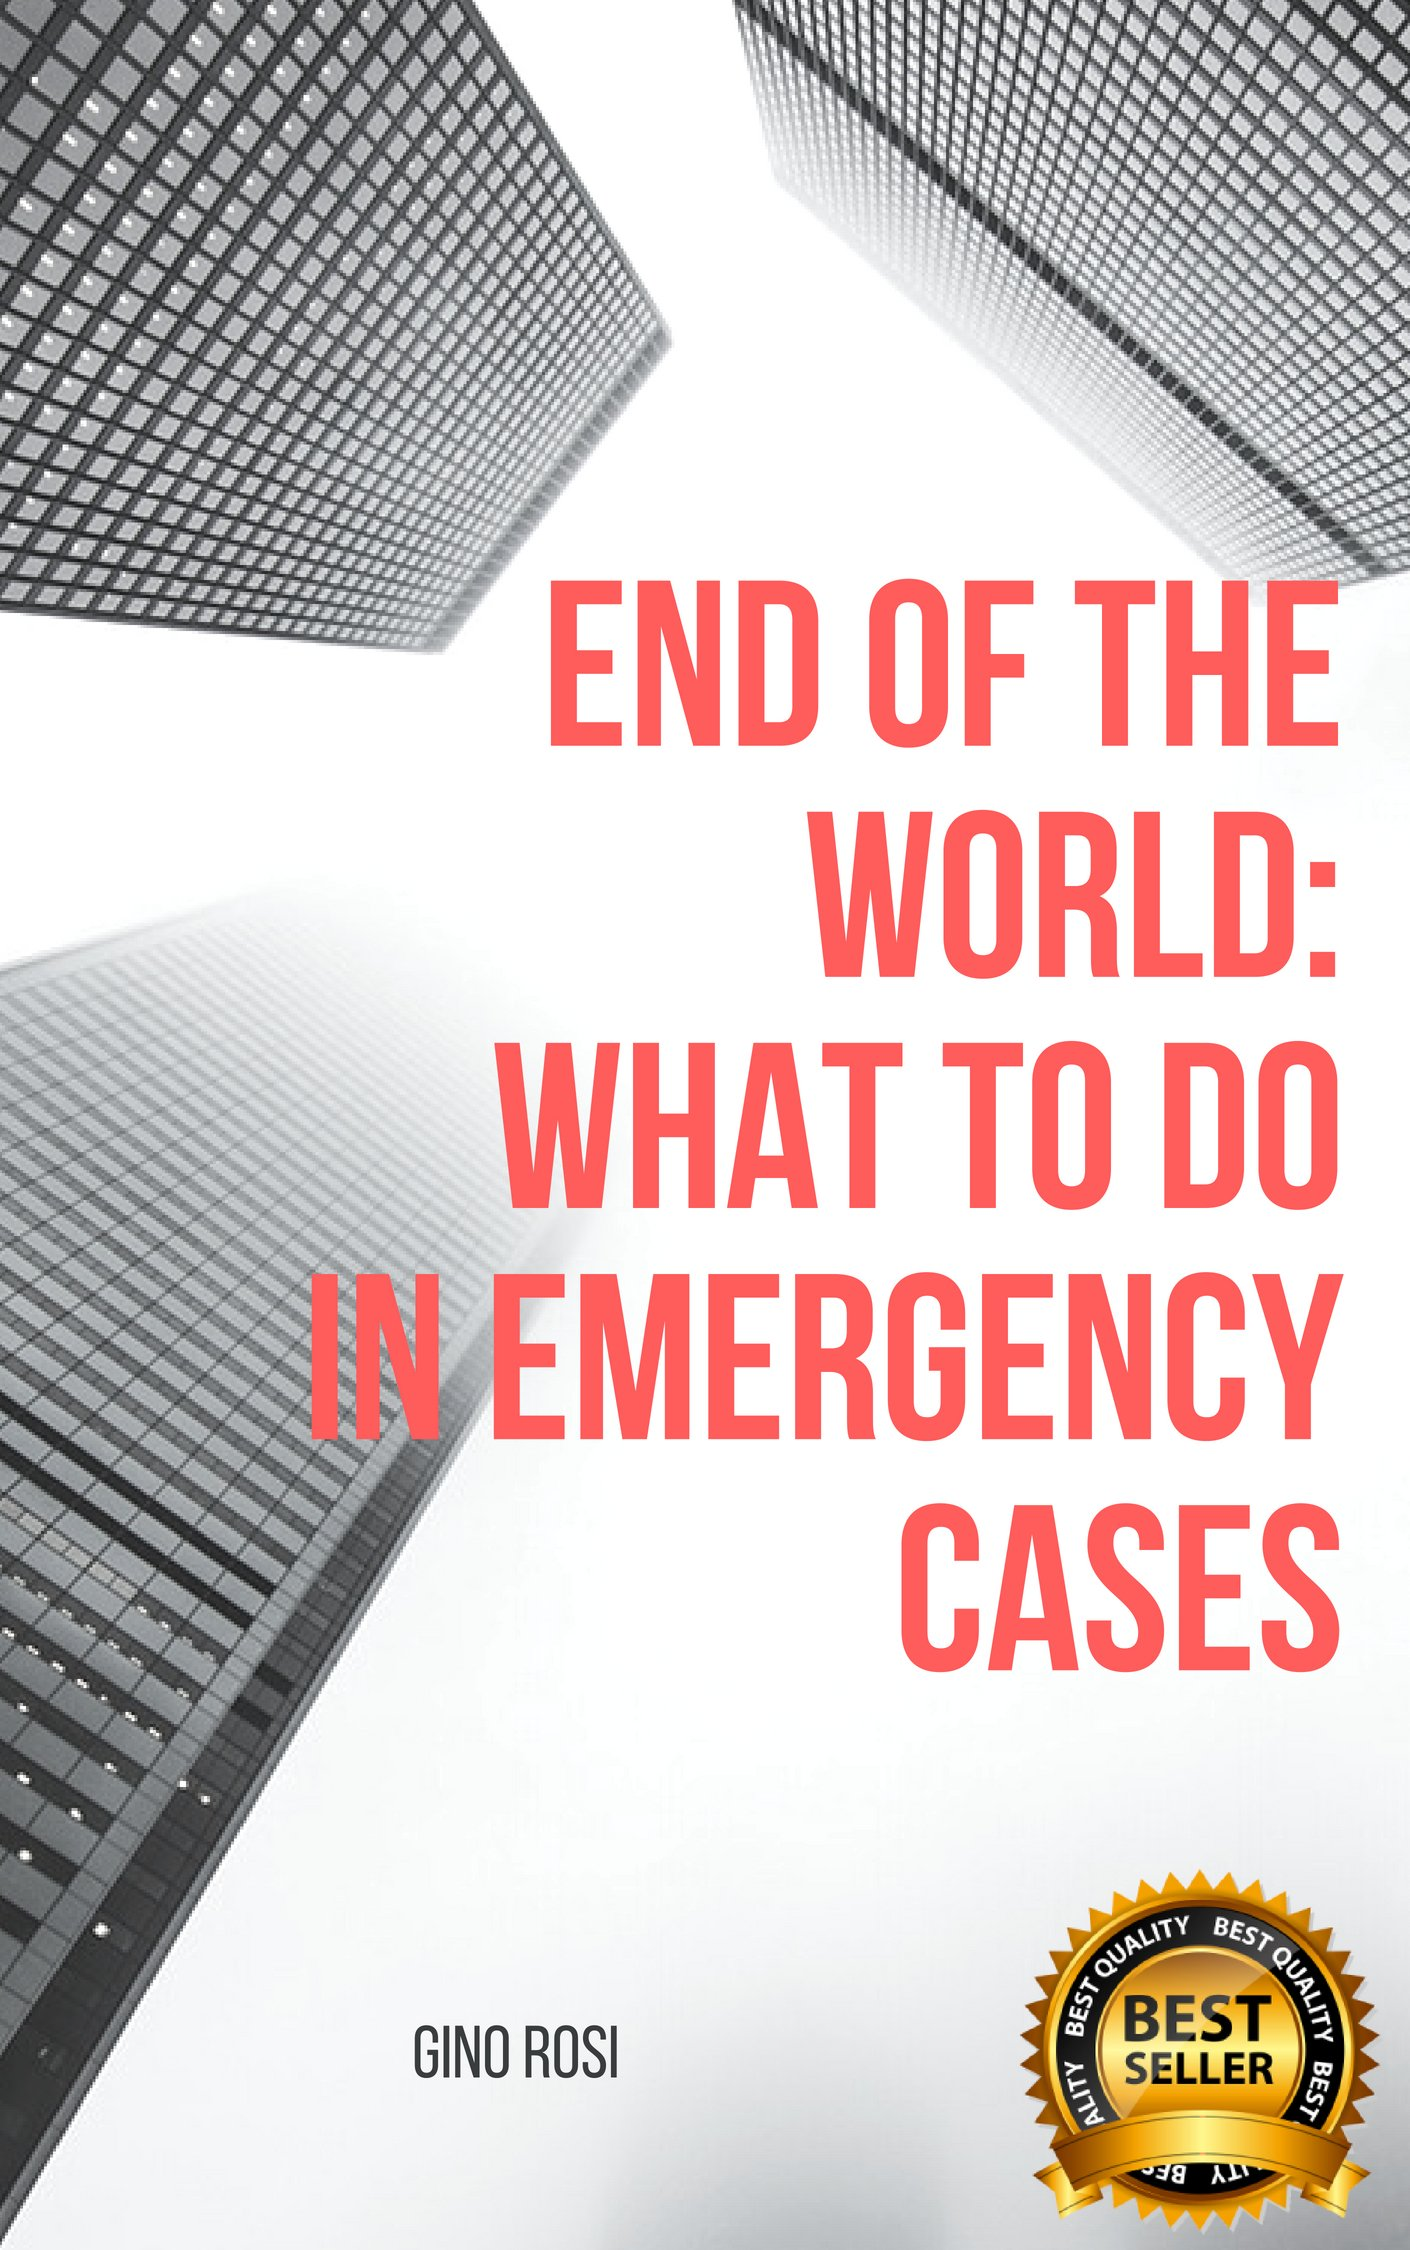 END OF THE WORLD: WHAT TO DO IN EMERGENCY CASES (1)